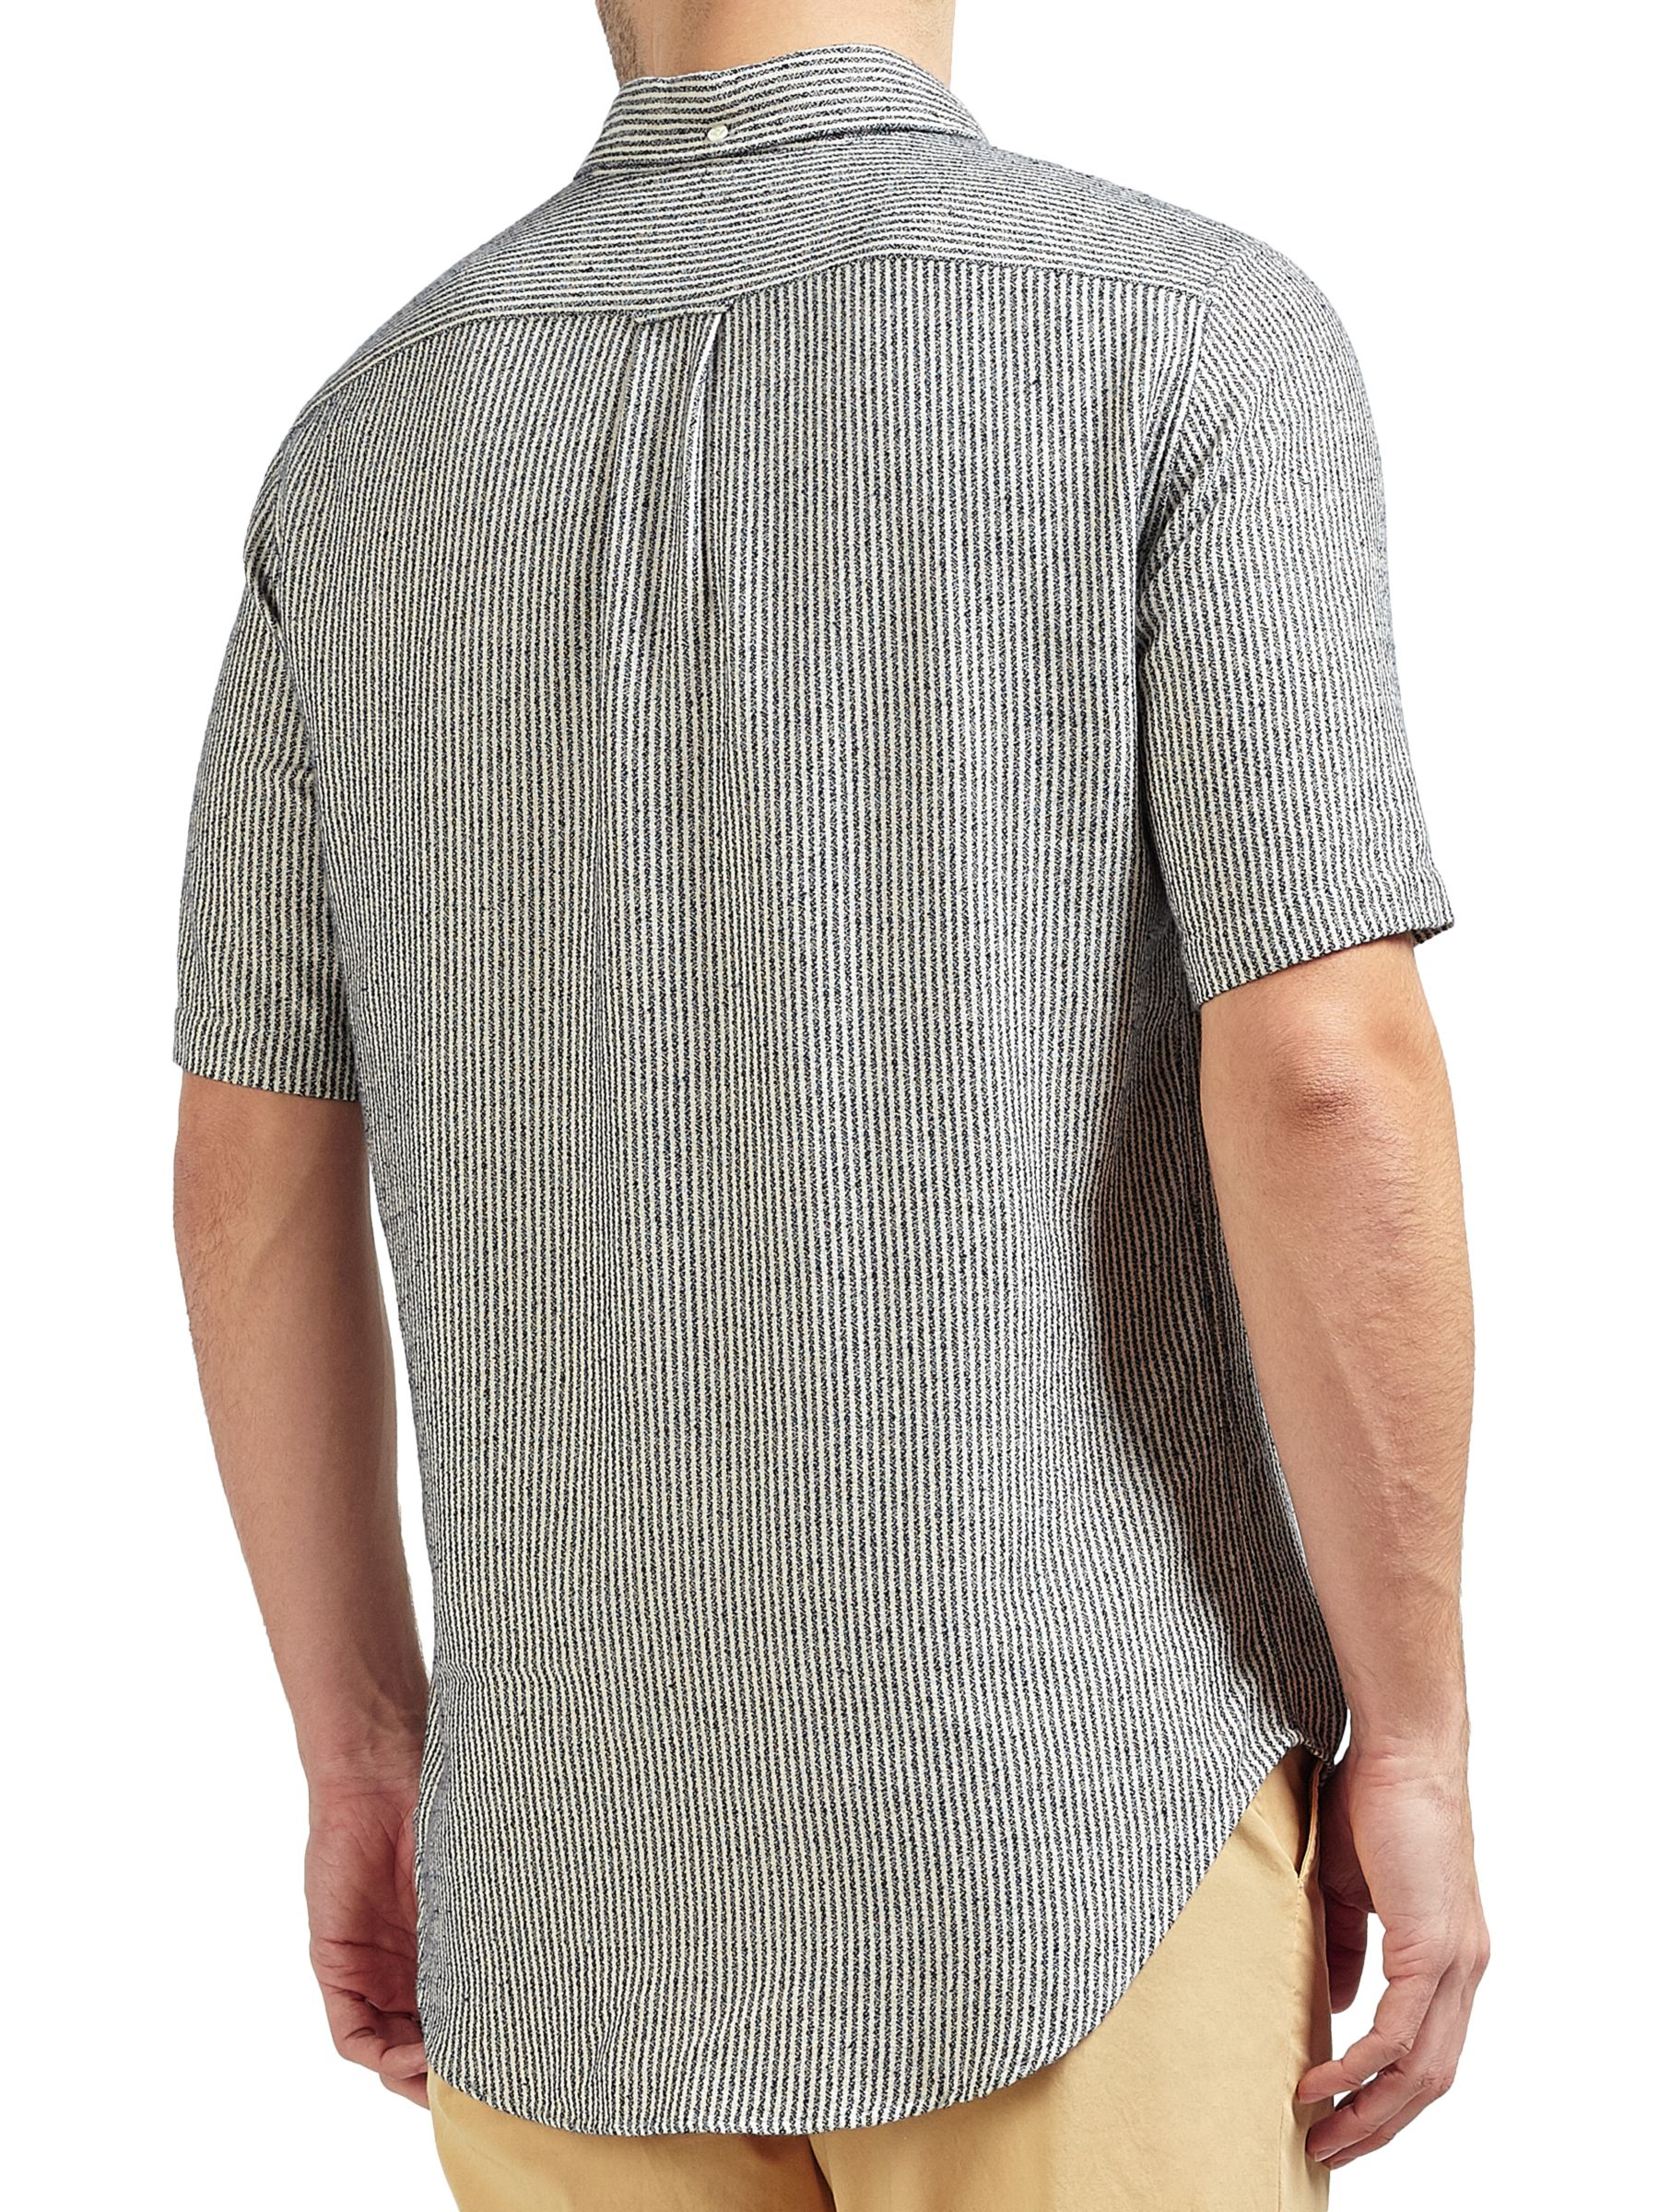 Gant Rugger Gant Rugger Micro Stripe Short Sleeve Shirt, Evening Blue